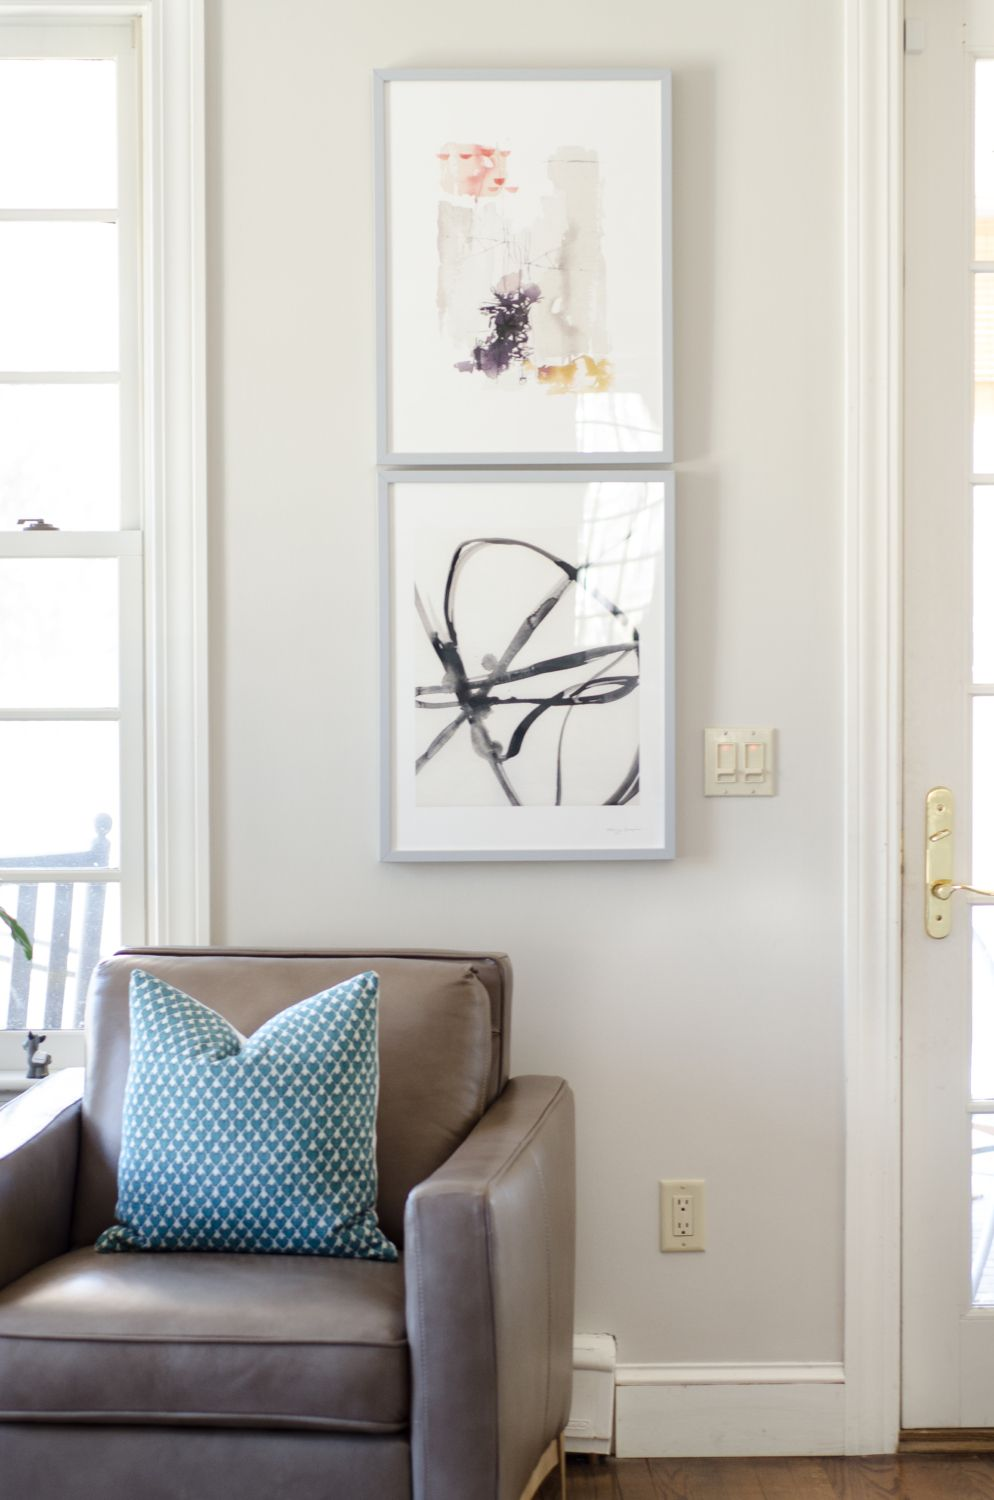 How to Choose Artwork for a Room | Artwork, Art prints and Prints